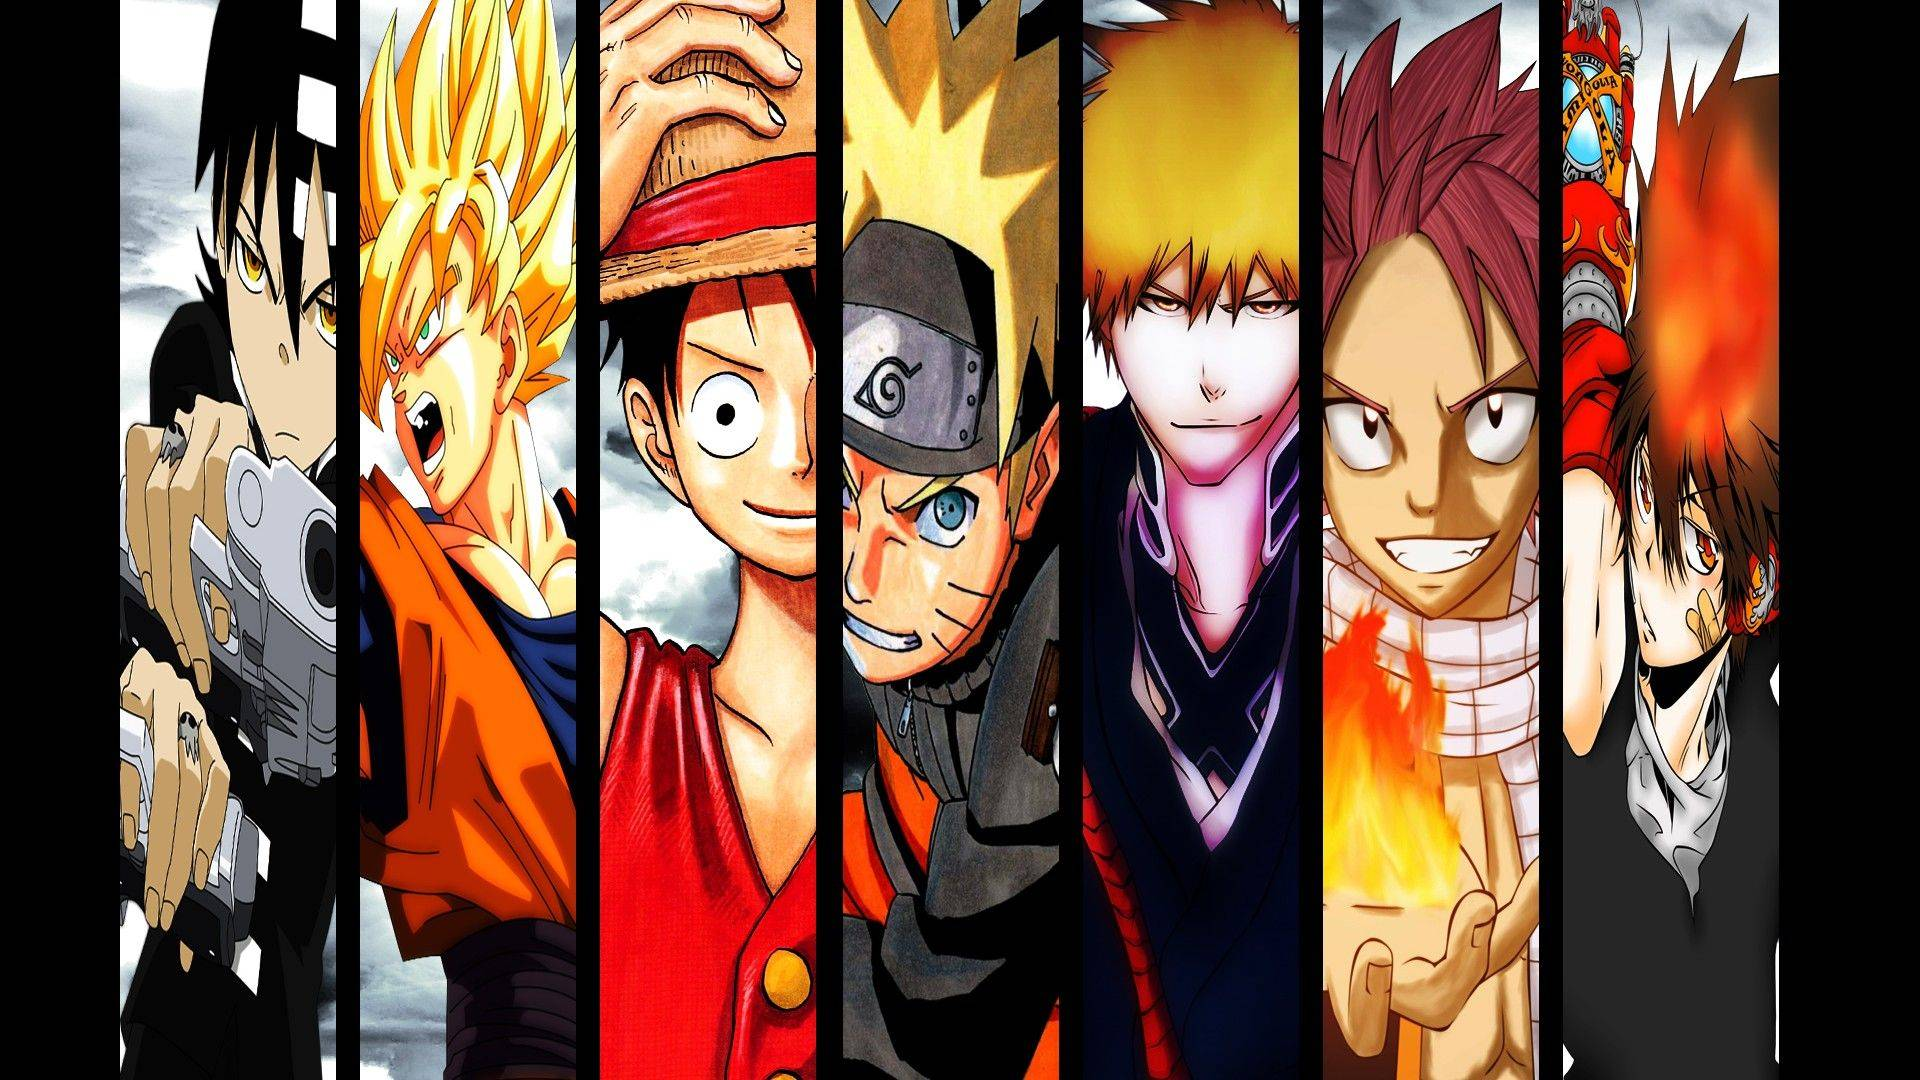 Naruto Bleach One Piece Fairy Tail All in One Wallpapers